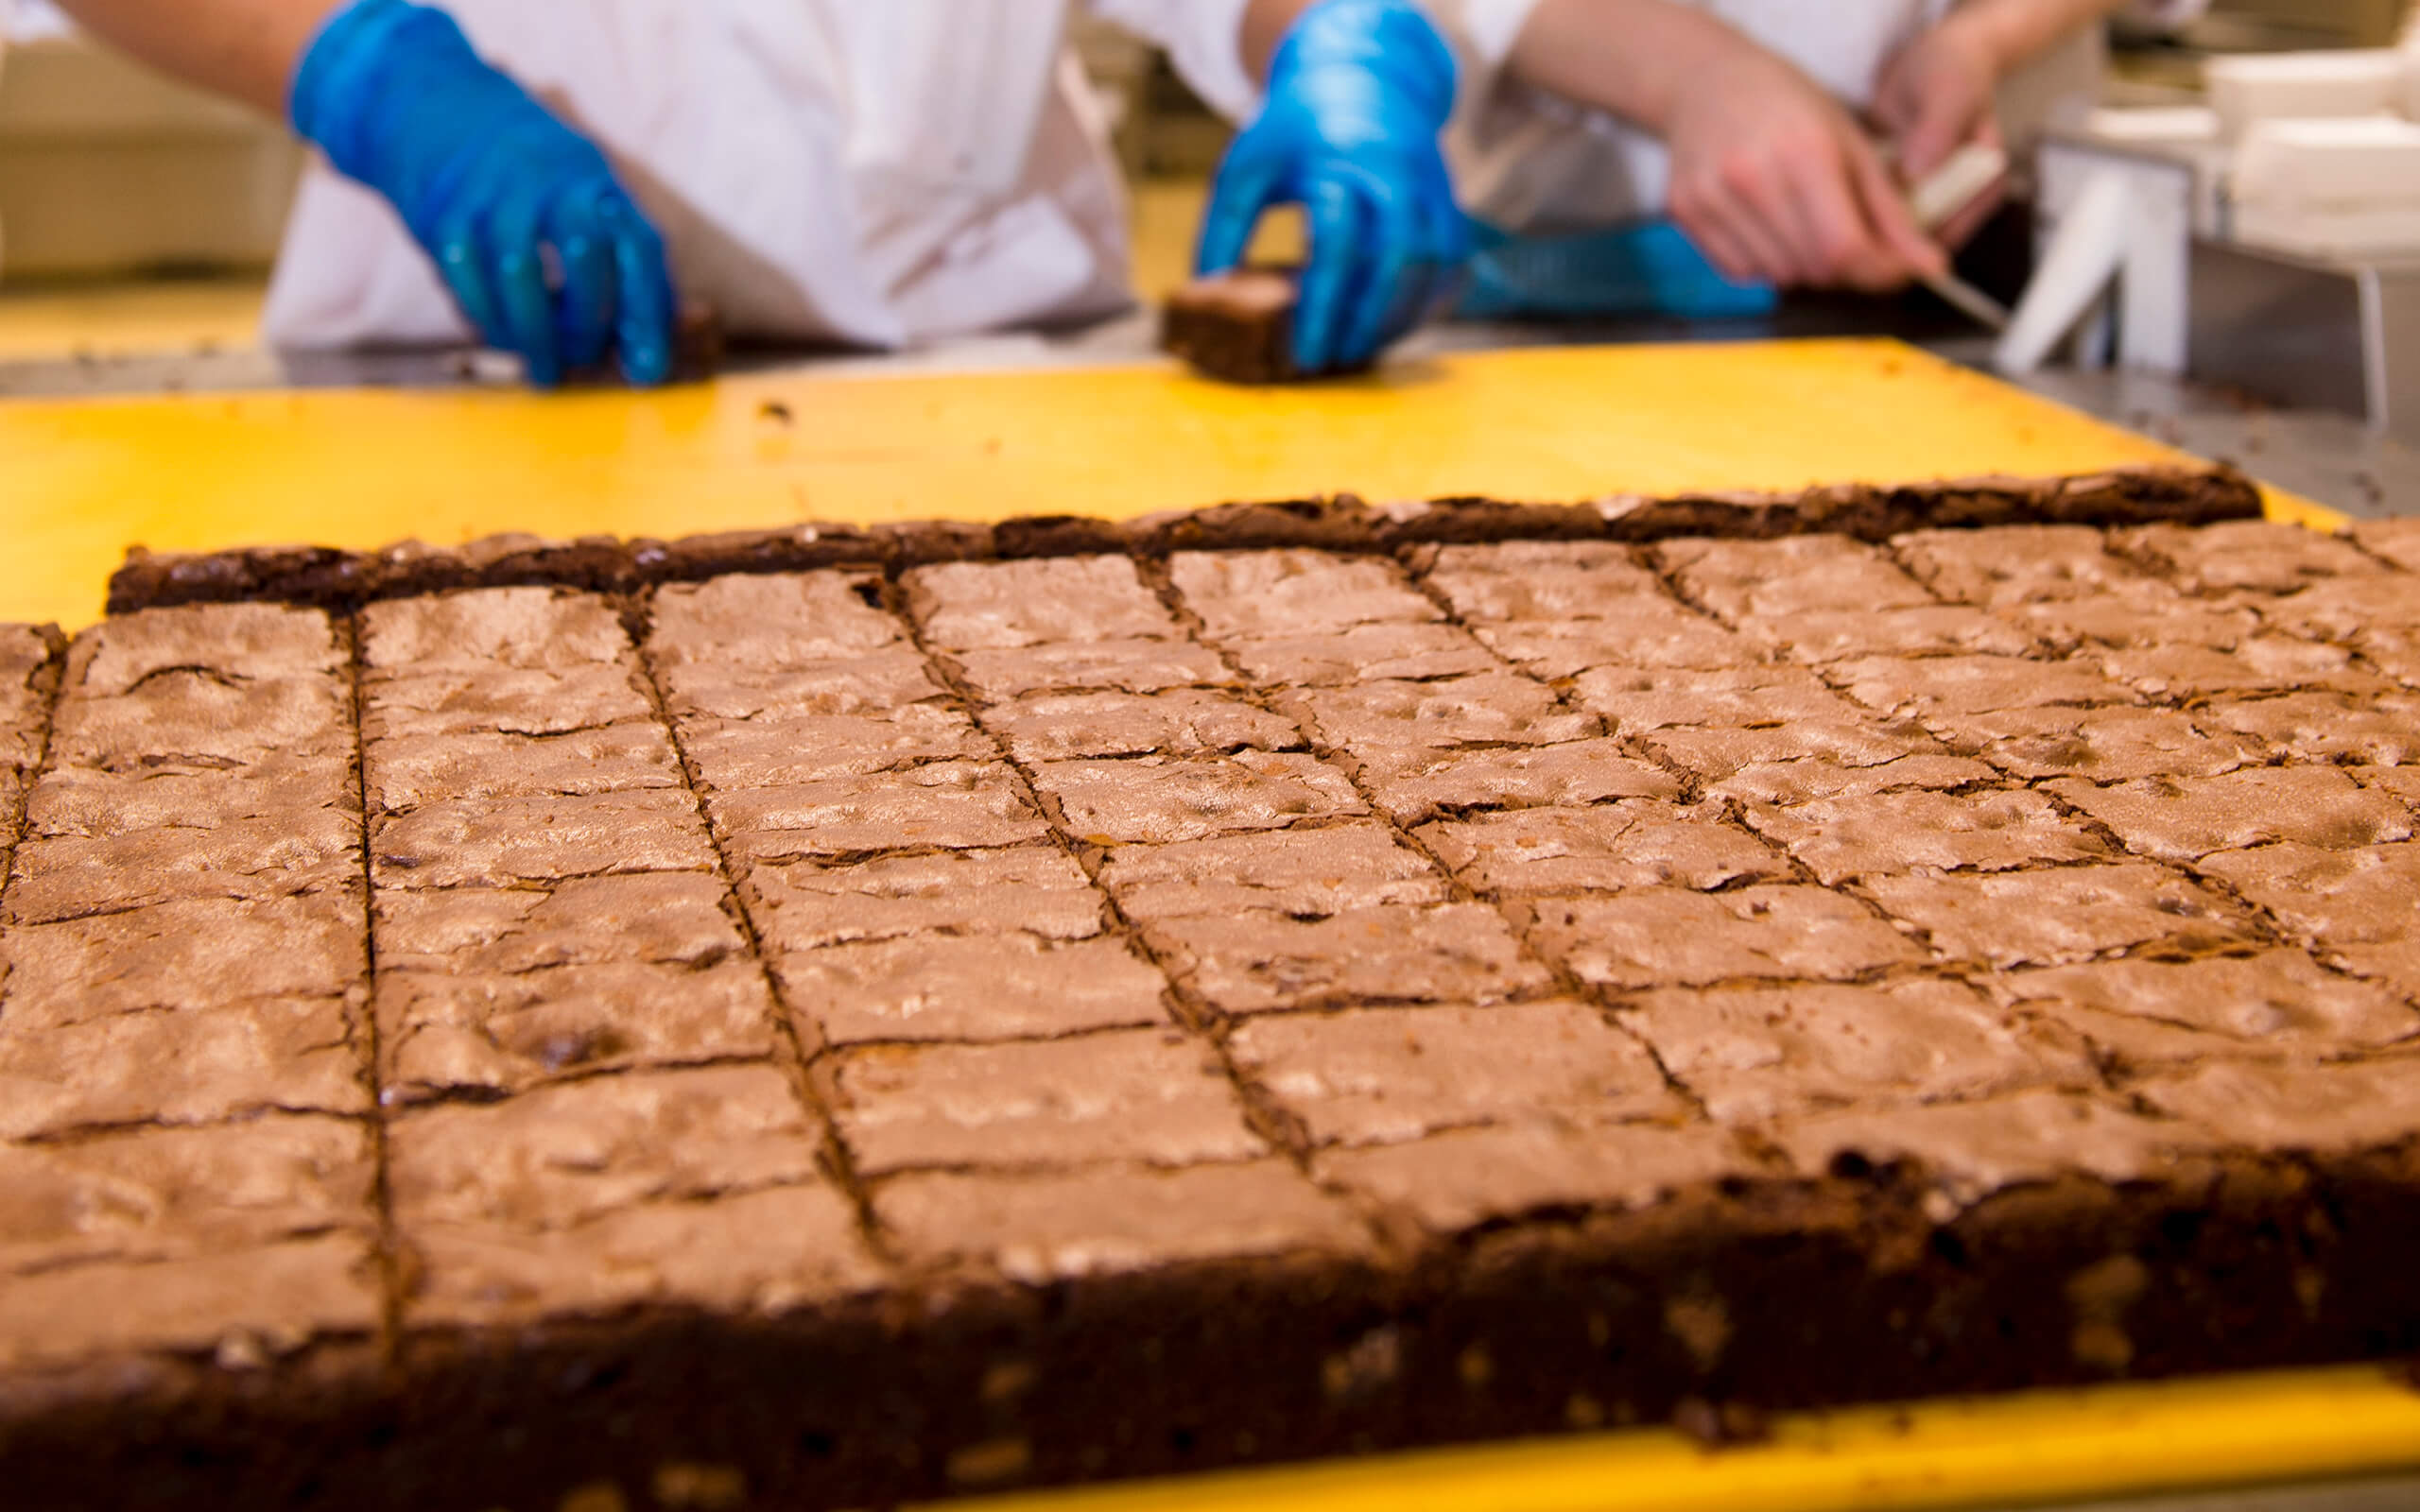 Industrial amounts of brownie being handled on a yellow board with factory worker's hands in the background